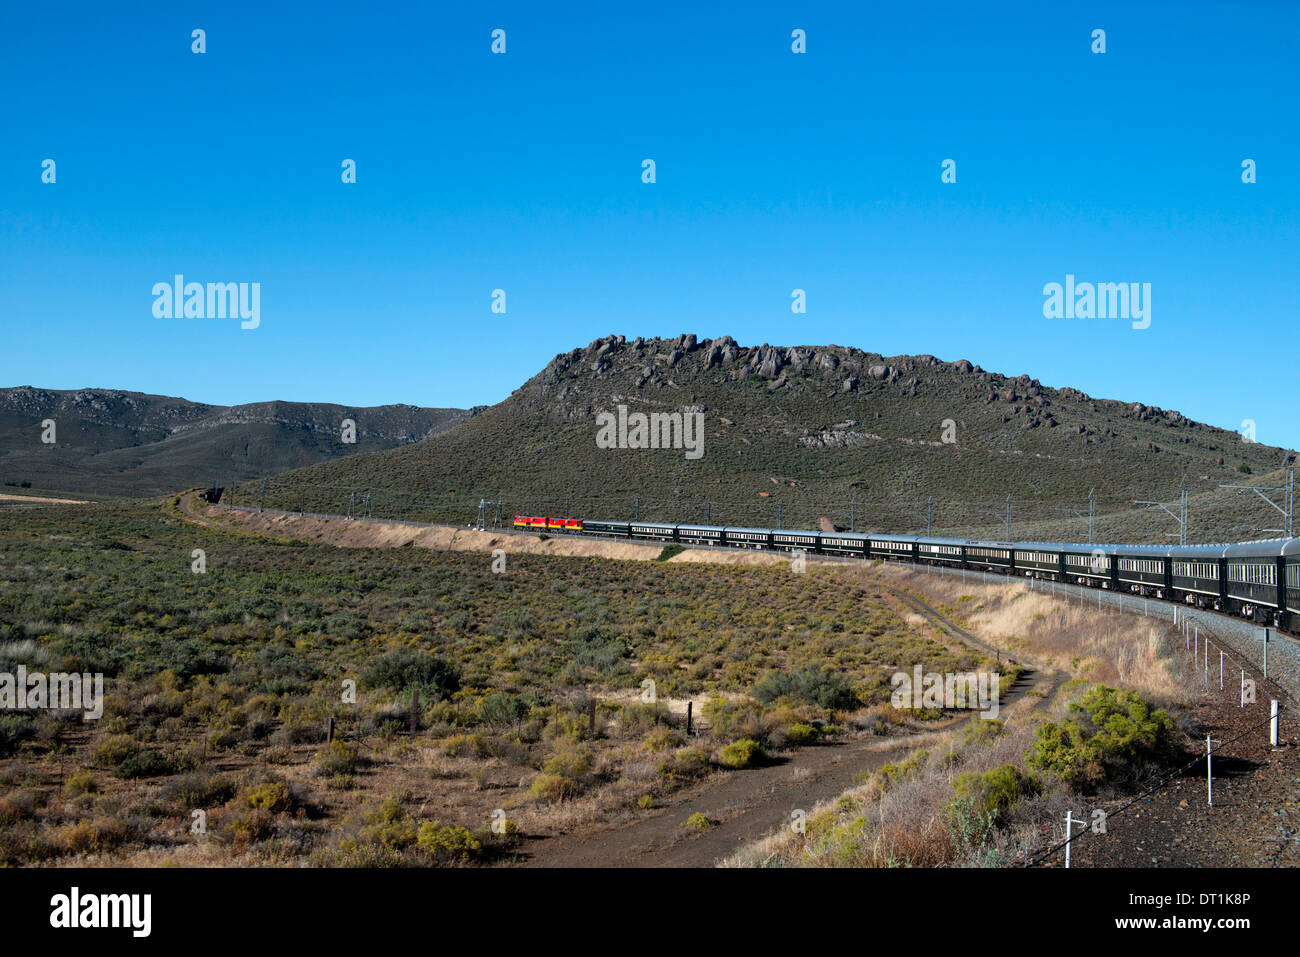 Rovos Rail train about to enter a tunnel in the Klein Karoo desert, South Africa, Africa - Stock Image